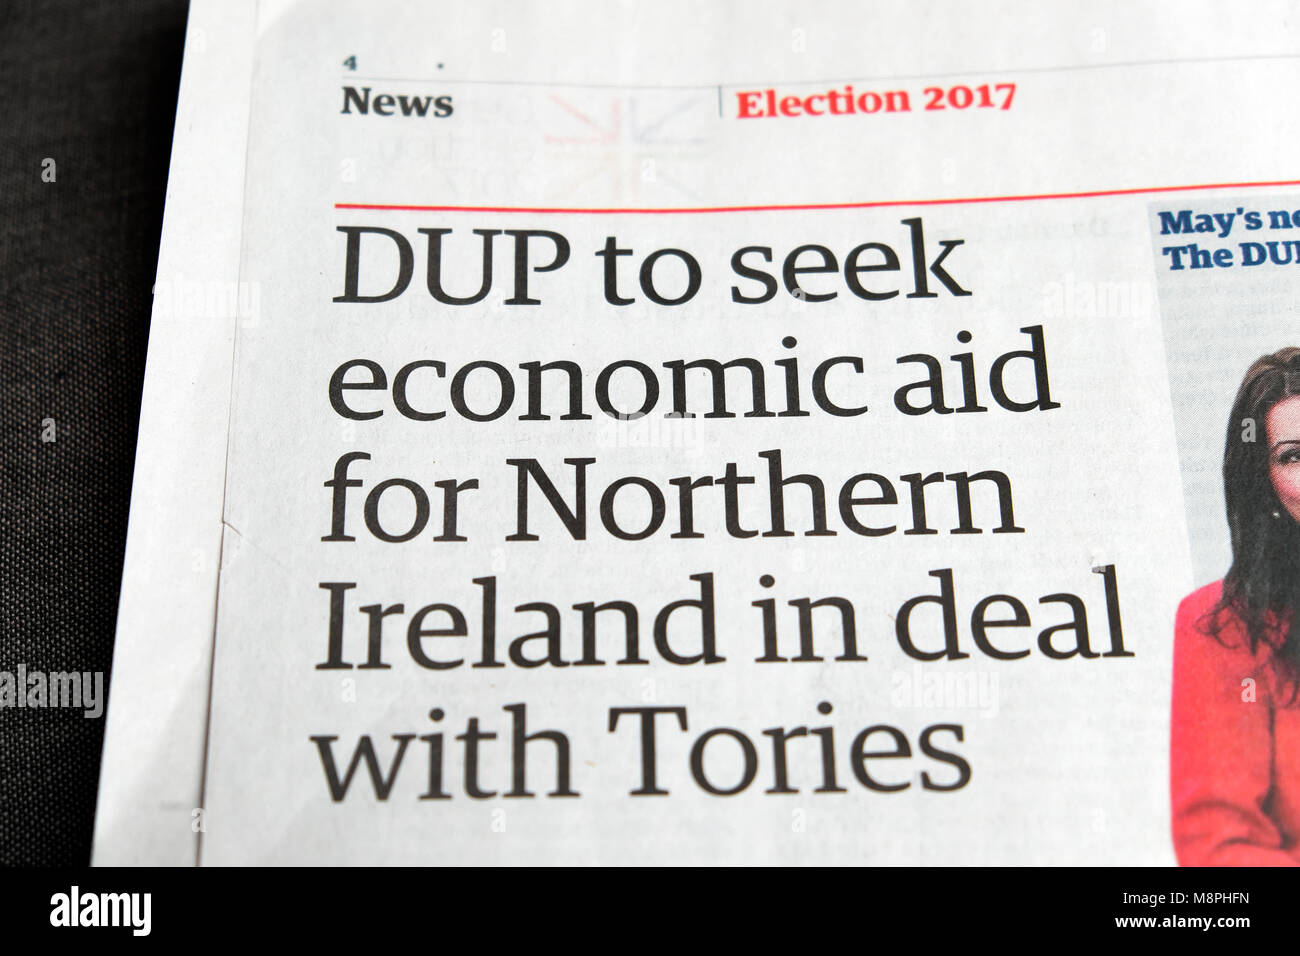 'DUP to seek economic aid for Northern Ireland in deal with Tories' Guardian newspaper election headline - Stock Image